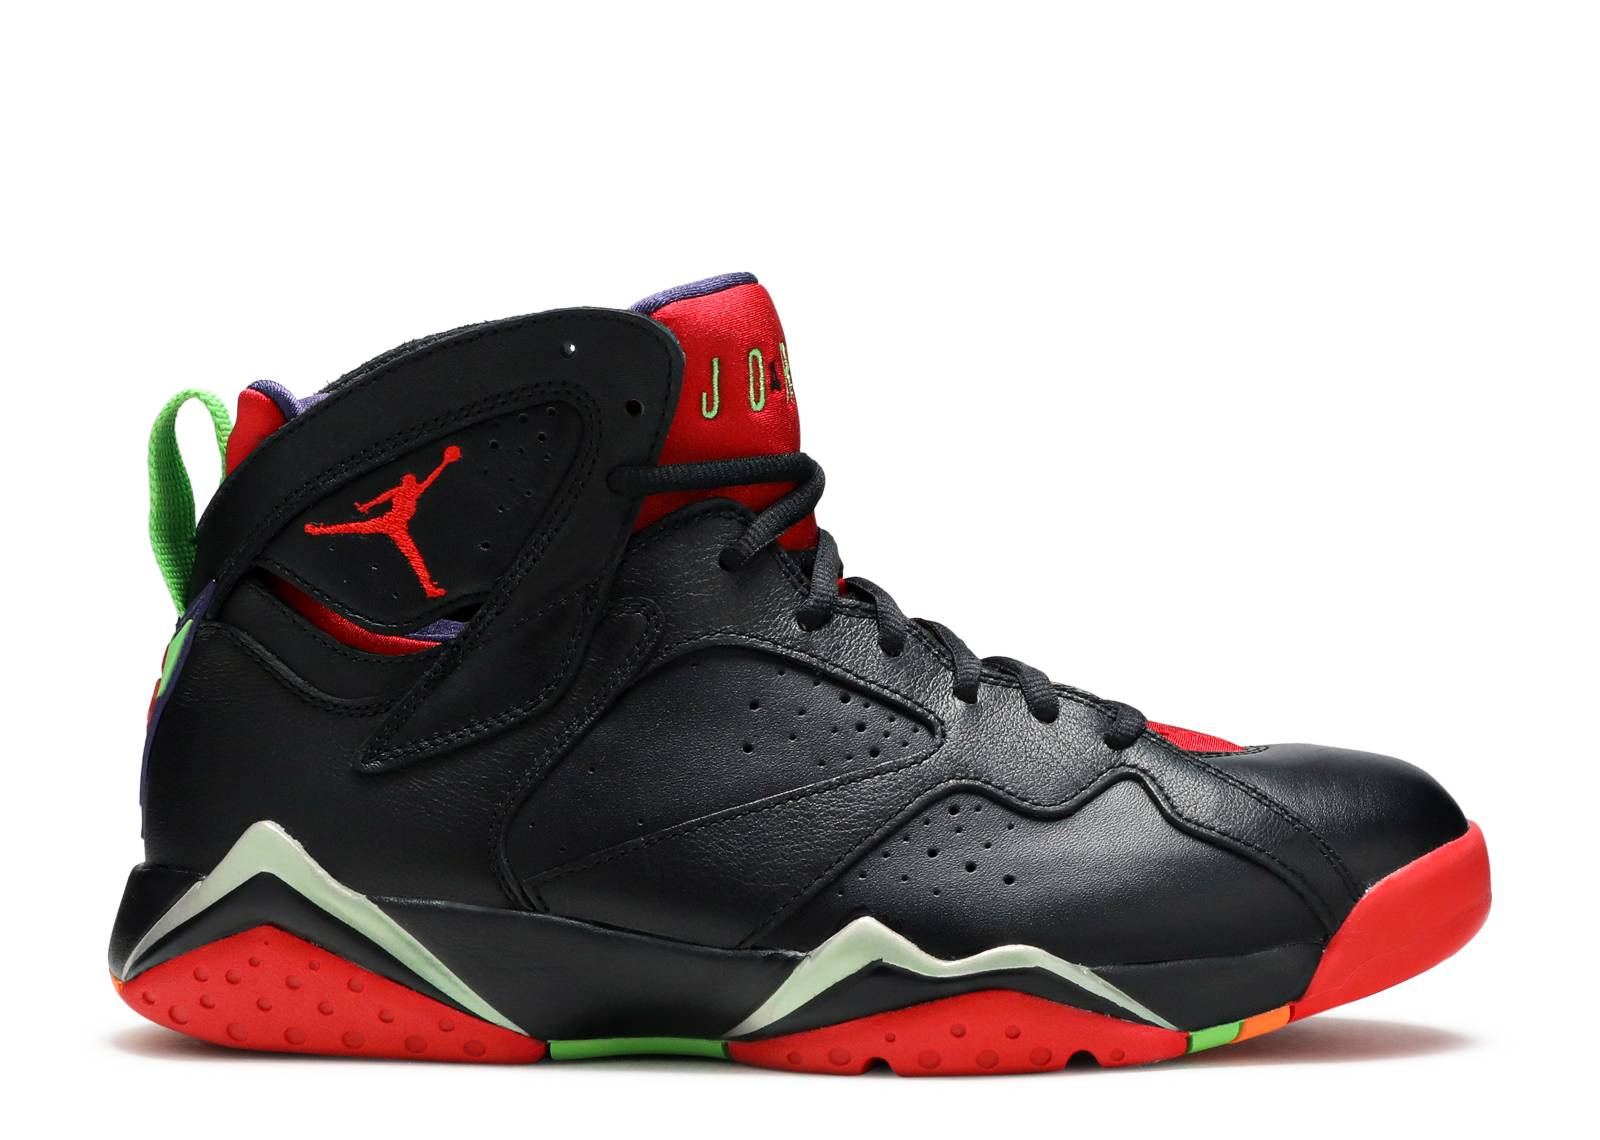 72c133a6ad00a1 Air Jordan 7 (VII) Shoes - Nike